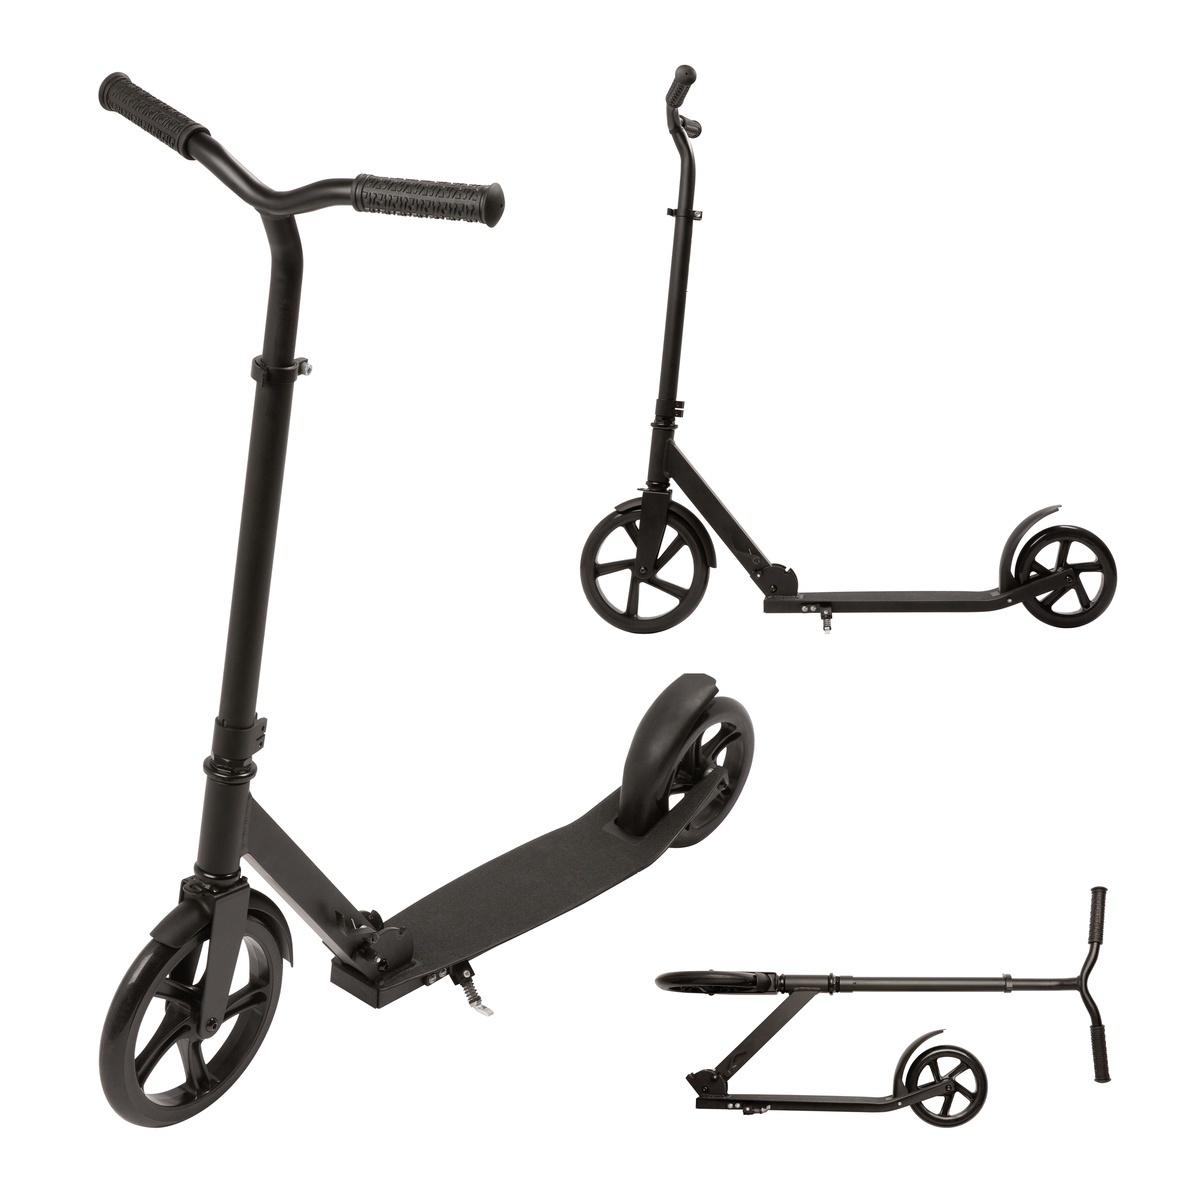 fun scooter roller tretroller bis 100 kg belastbar schwarz aluminium reflects ebay. Black Bedroom Furniture Sets. Home Design Ideas